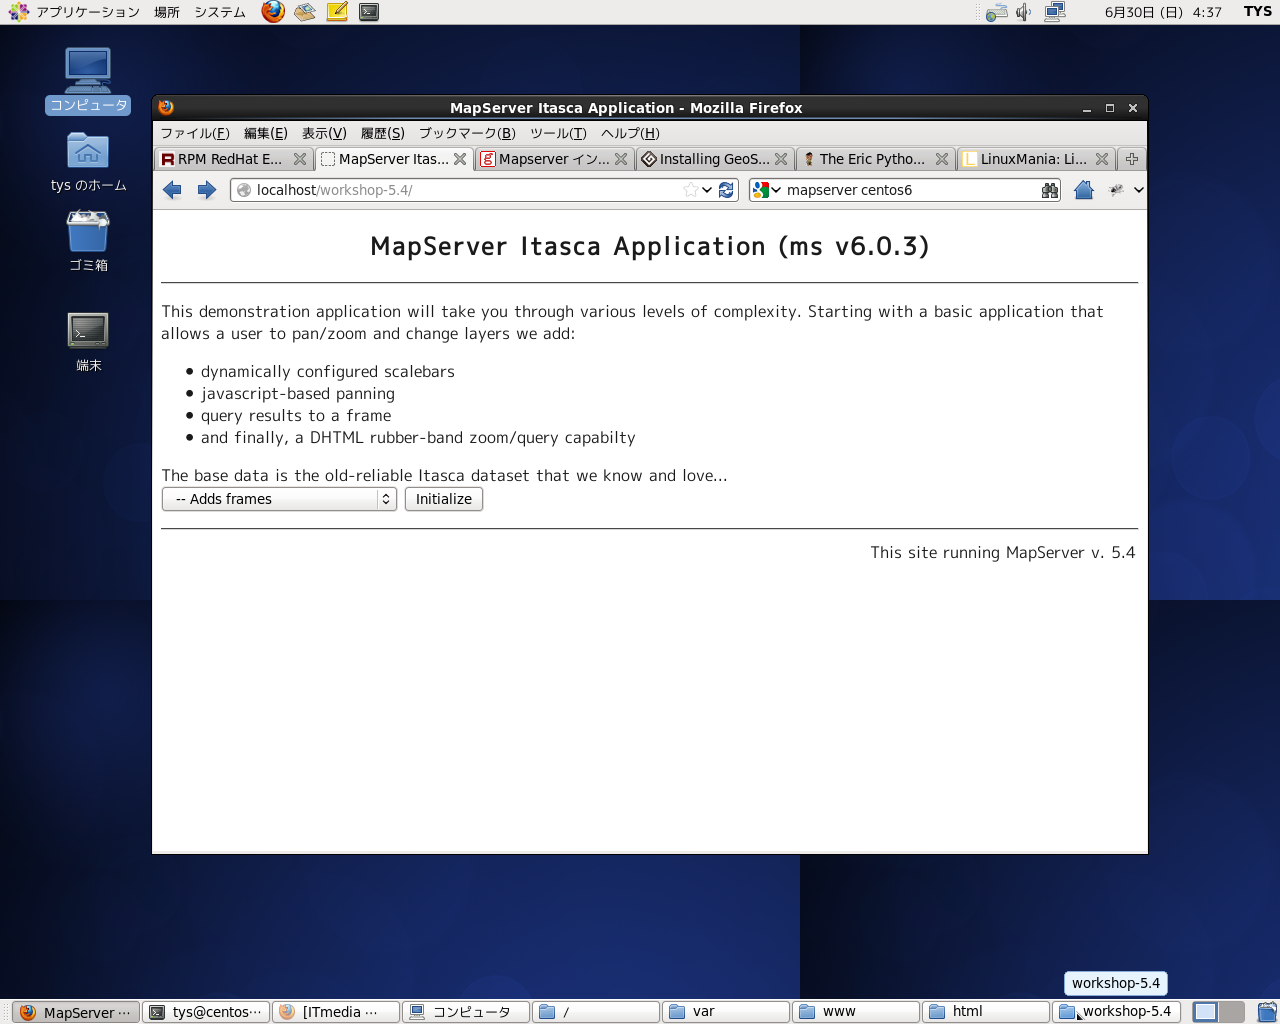 MapServer6.0.3 Demo1